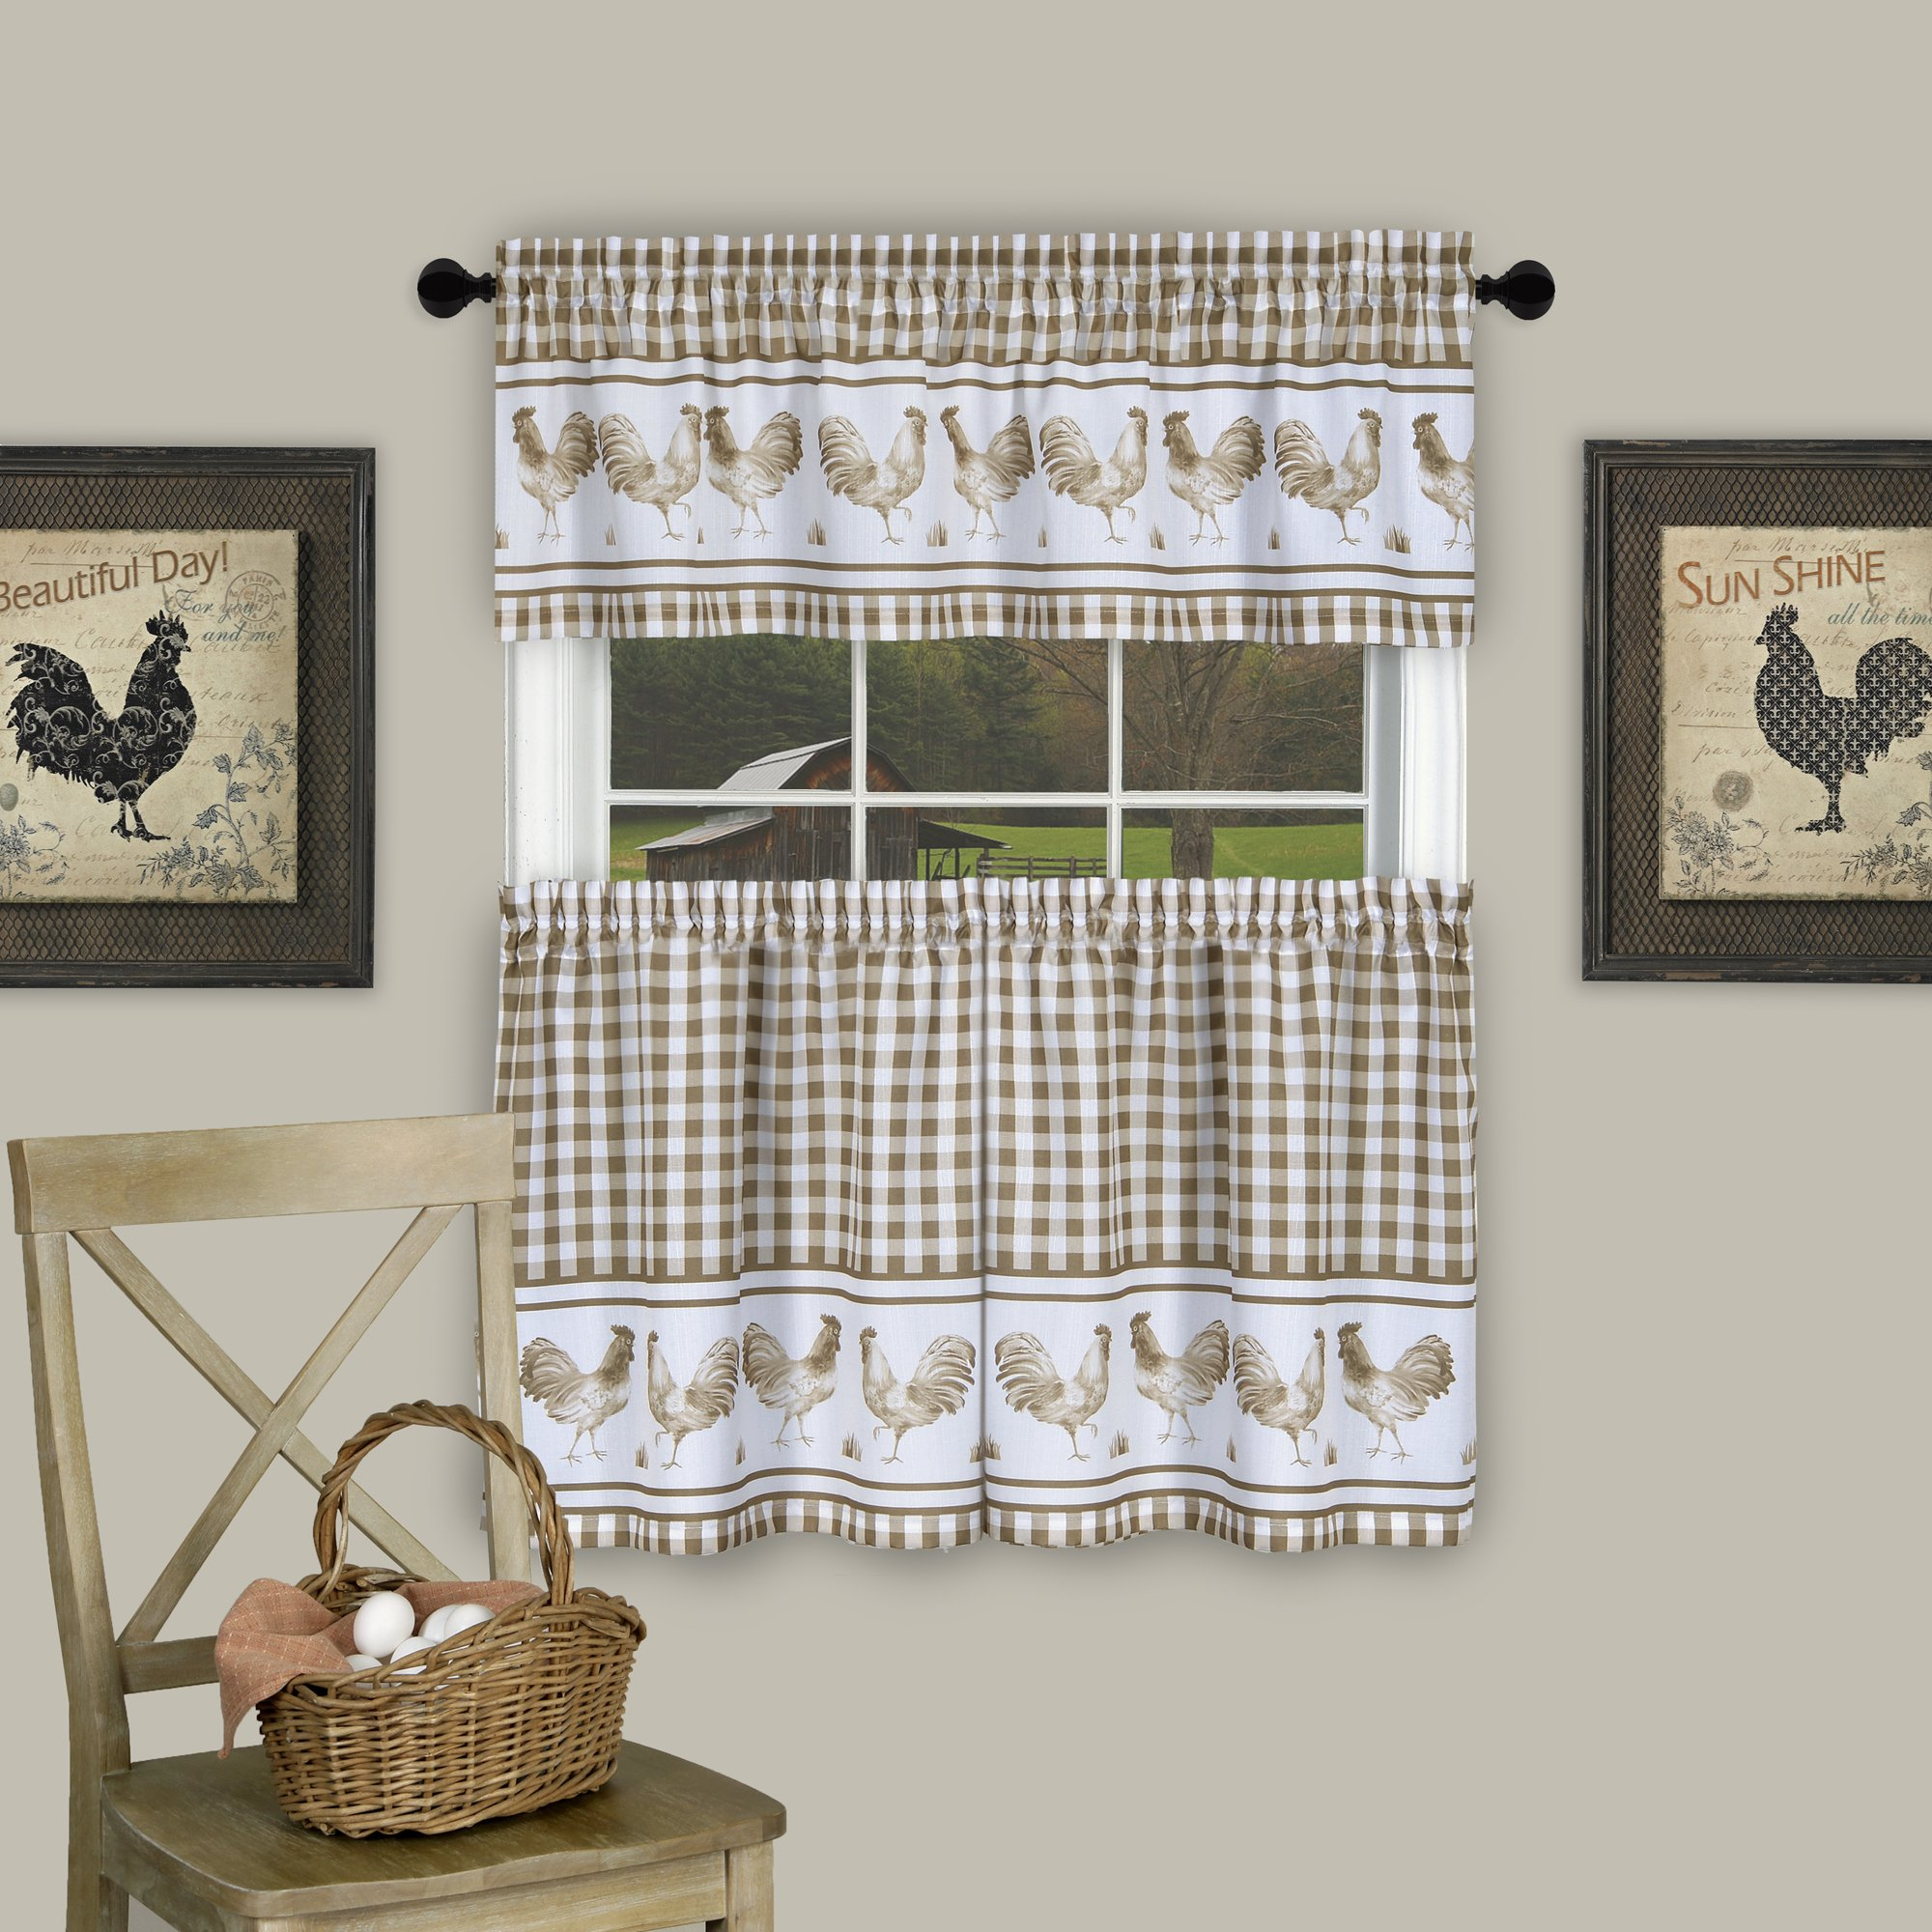 Serenity Home 3 Pc. Plaid Country Rooster Check Kitchen Curtains Tier & Valance Set(58x36, Taupe)